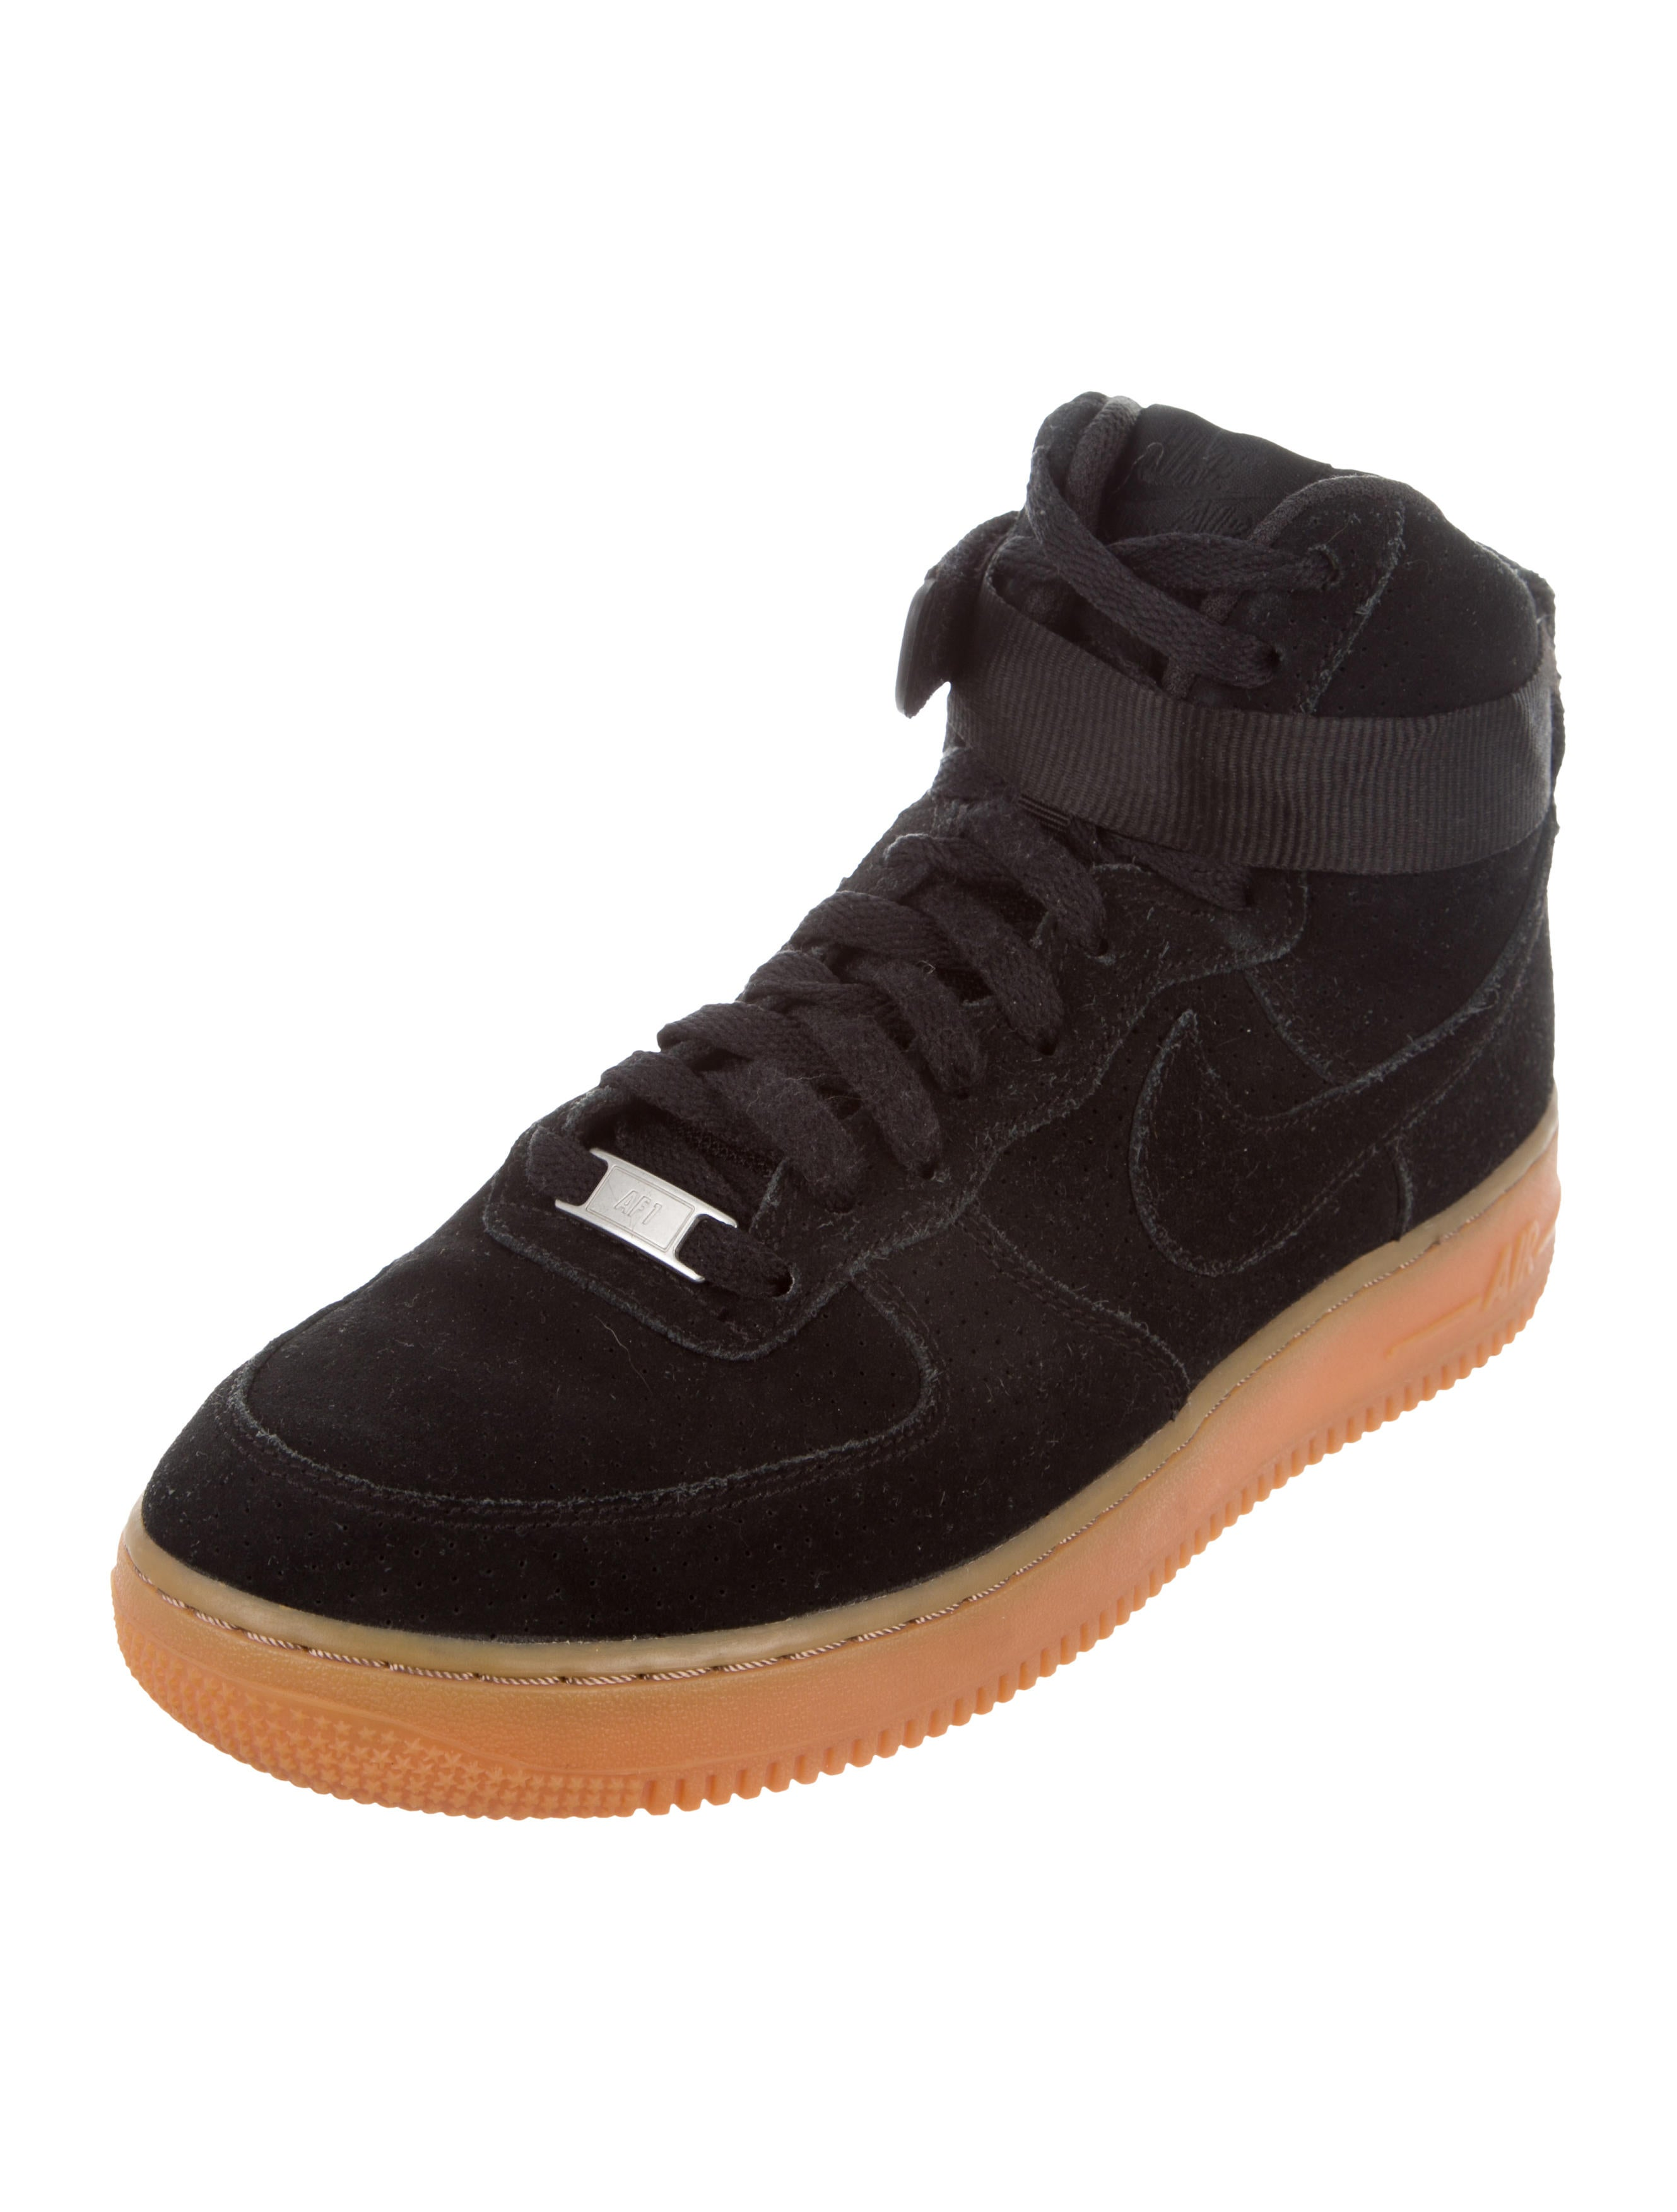 "Nike Air Force 1 High ""Black Suede Gum"" Wmn Sz 9.5 749266 001"